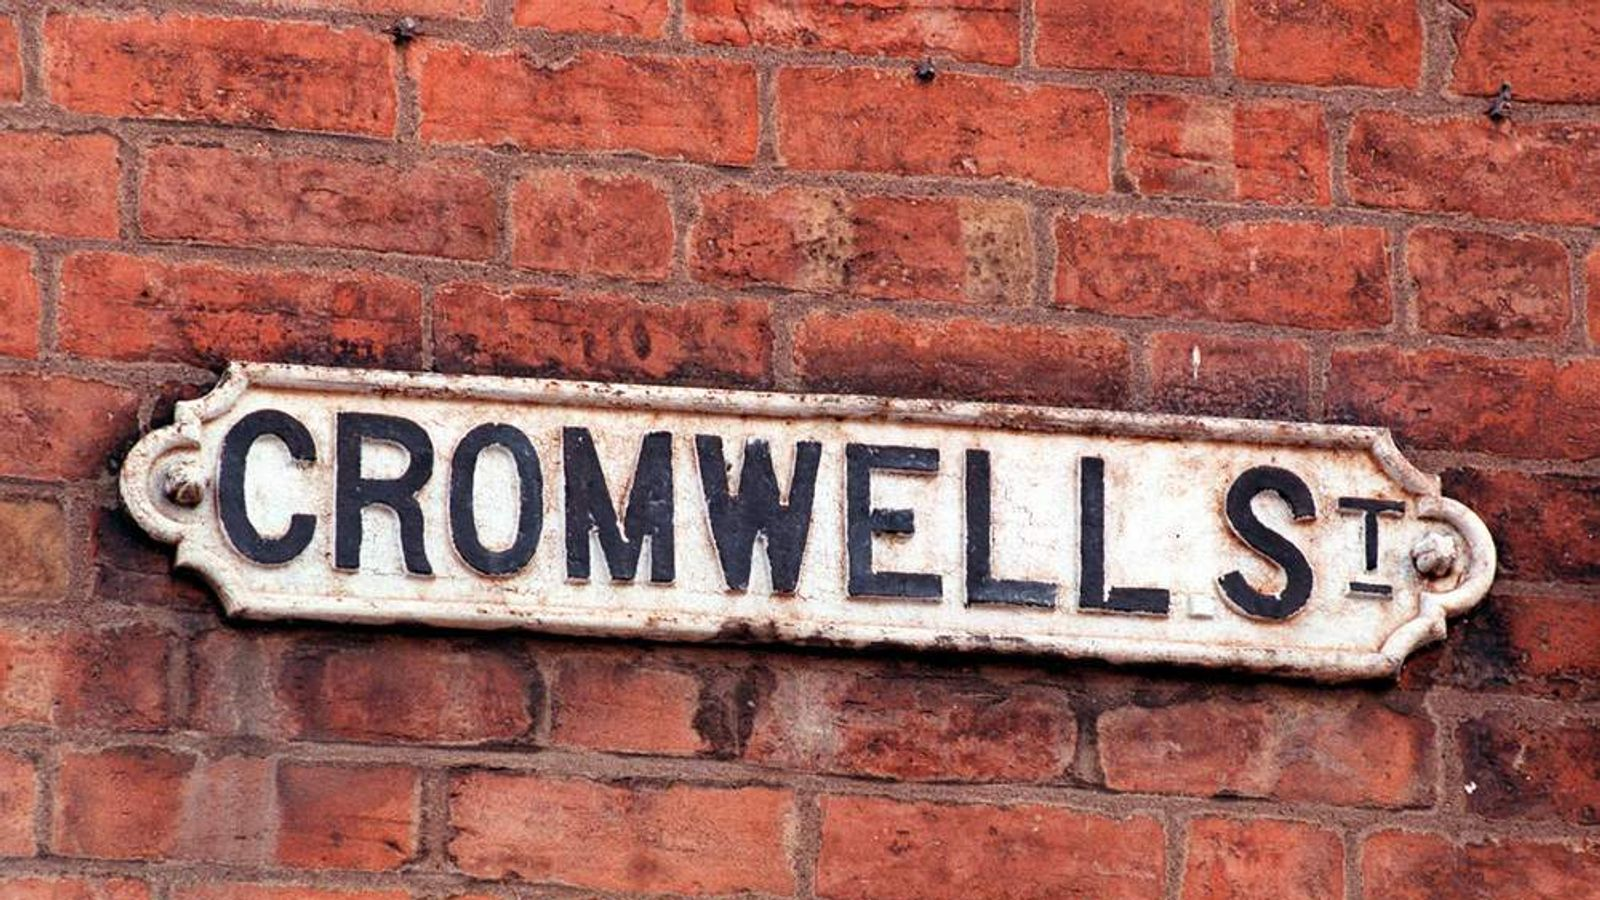 The sign on the wall in Cromwell Street, Gloucester, where Fred West lived.